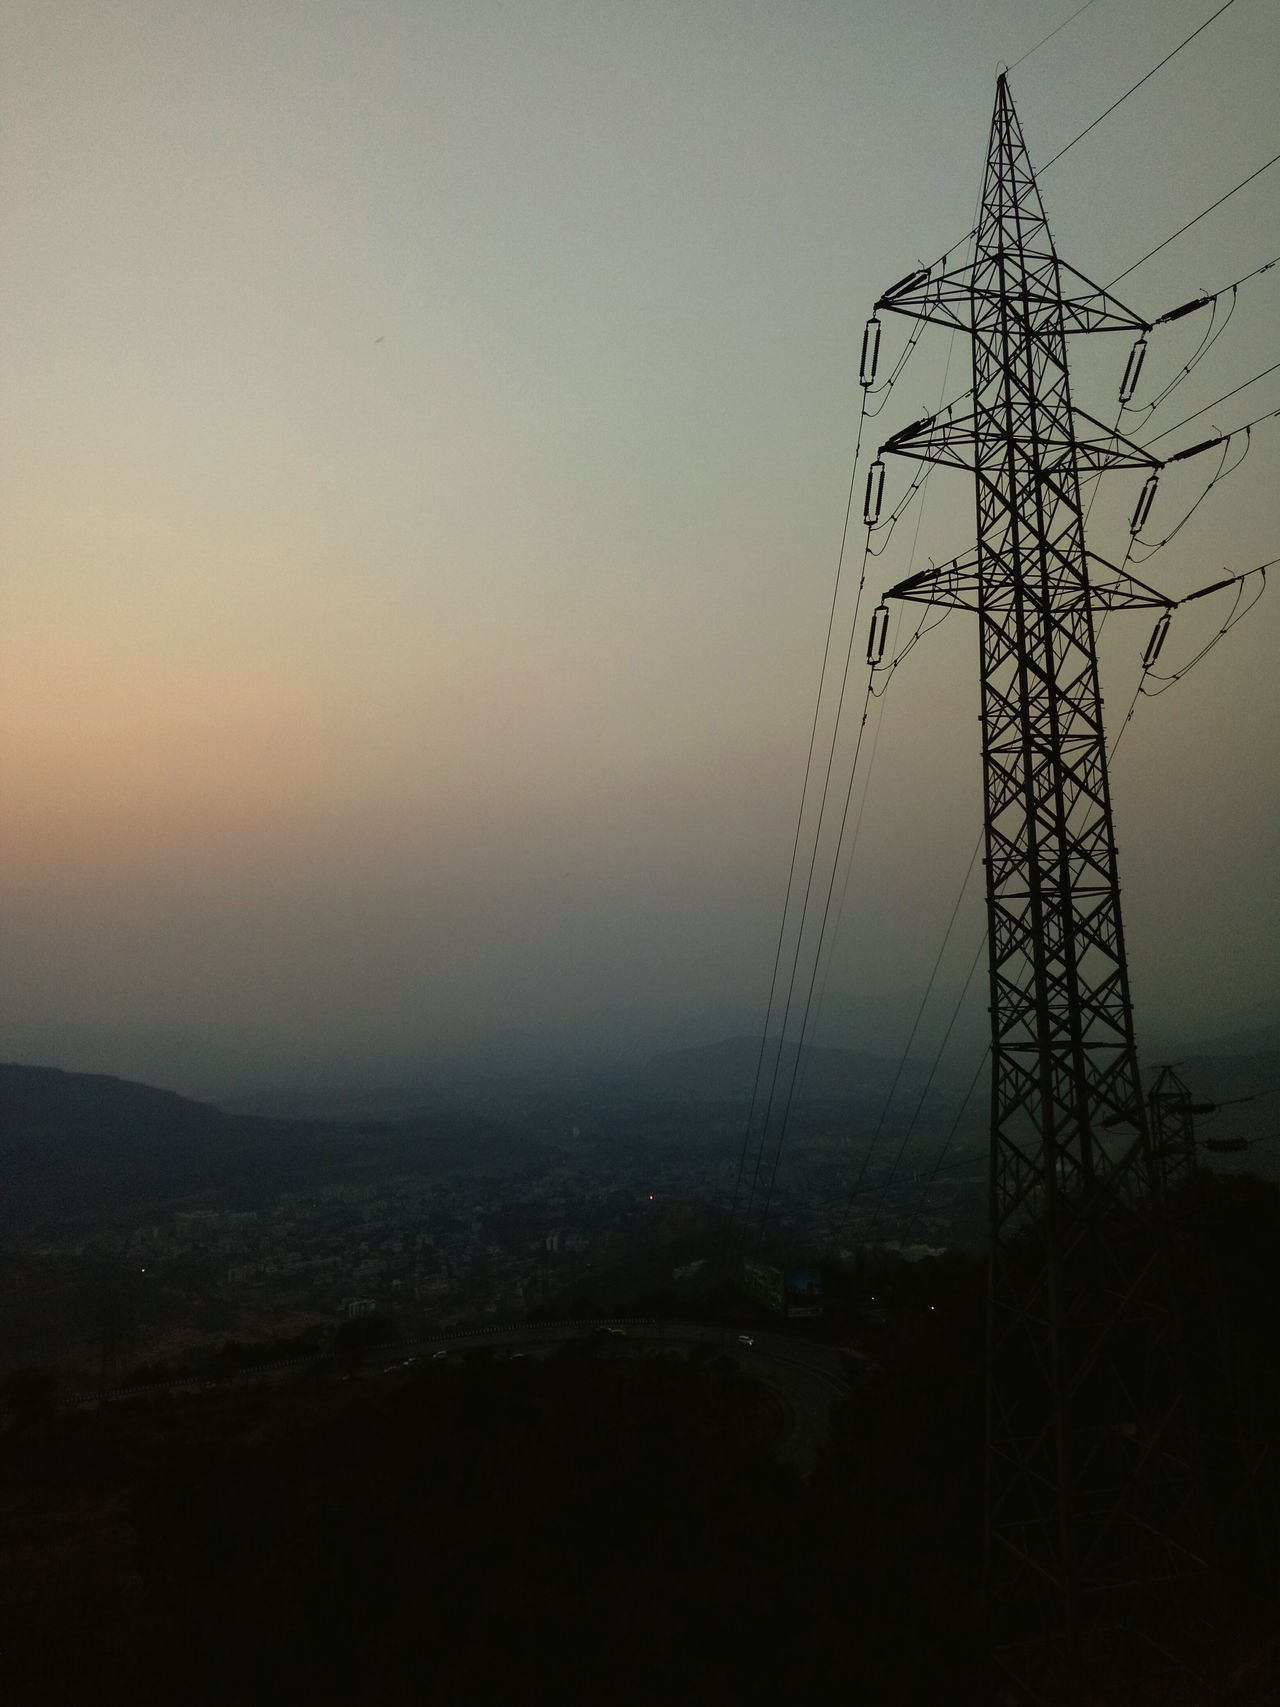 Technology Communication No People Silhouette Electricity  Landscape Tree Outdoors Electricity Pylon Day Sky Bird Beauty In Nature Close-up Bonding Travel Destinations Togetherness Sunset Low Angle View Fog Refreshment Mountain Cloud - Sky Tranquil Scene